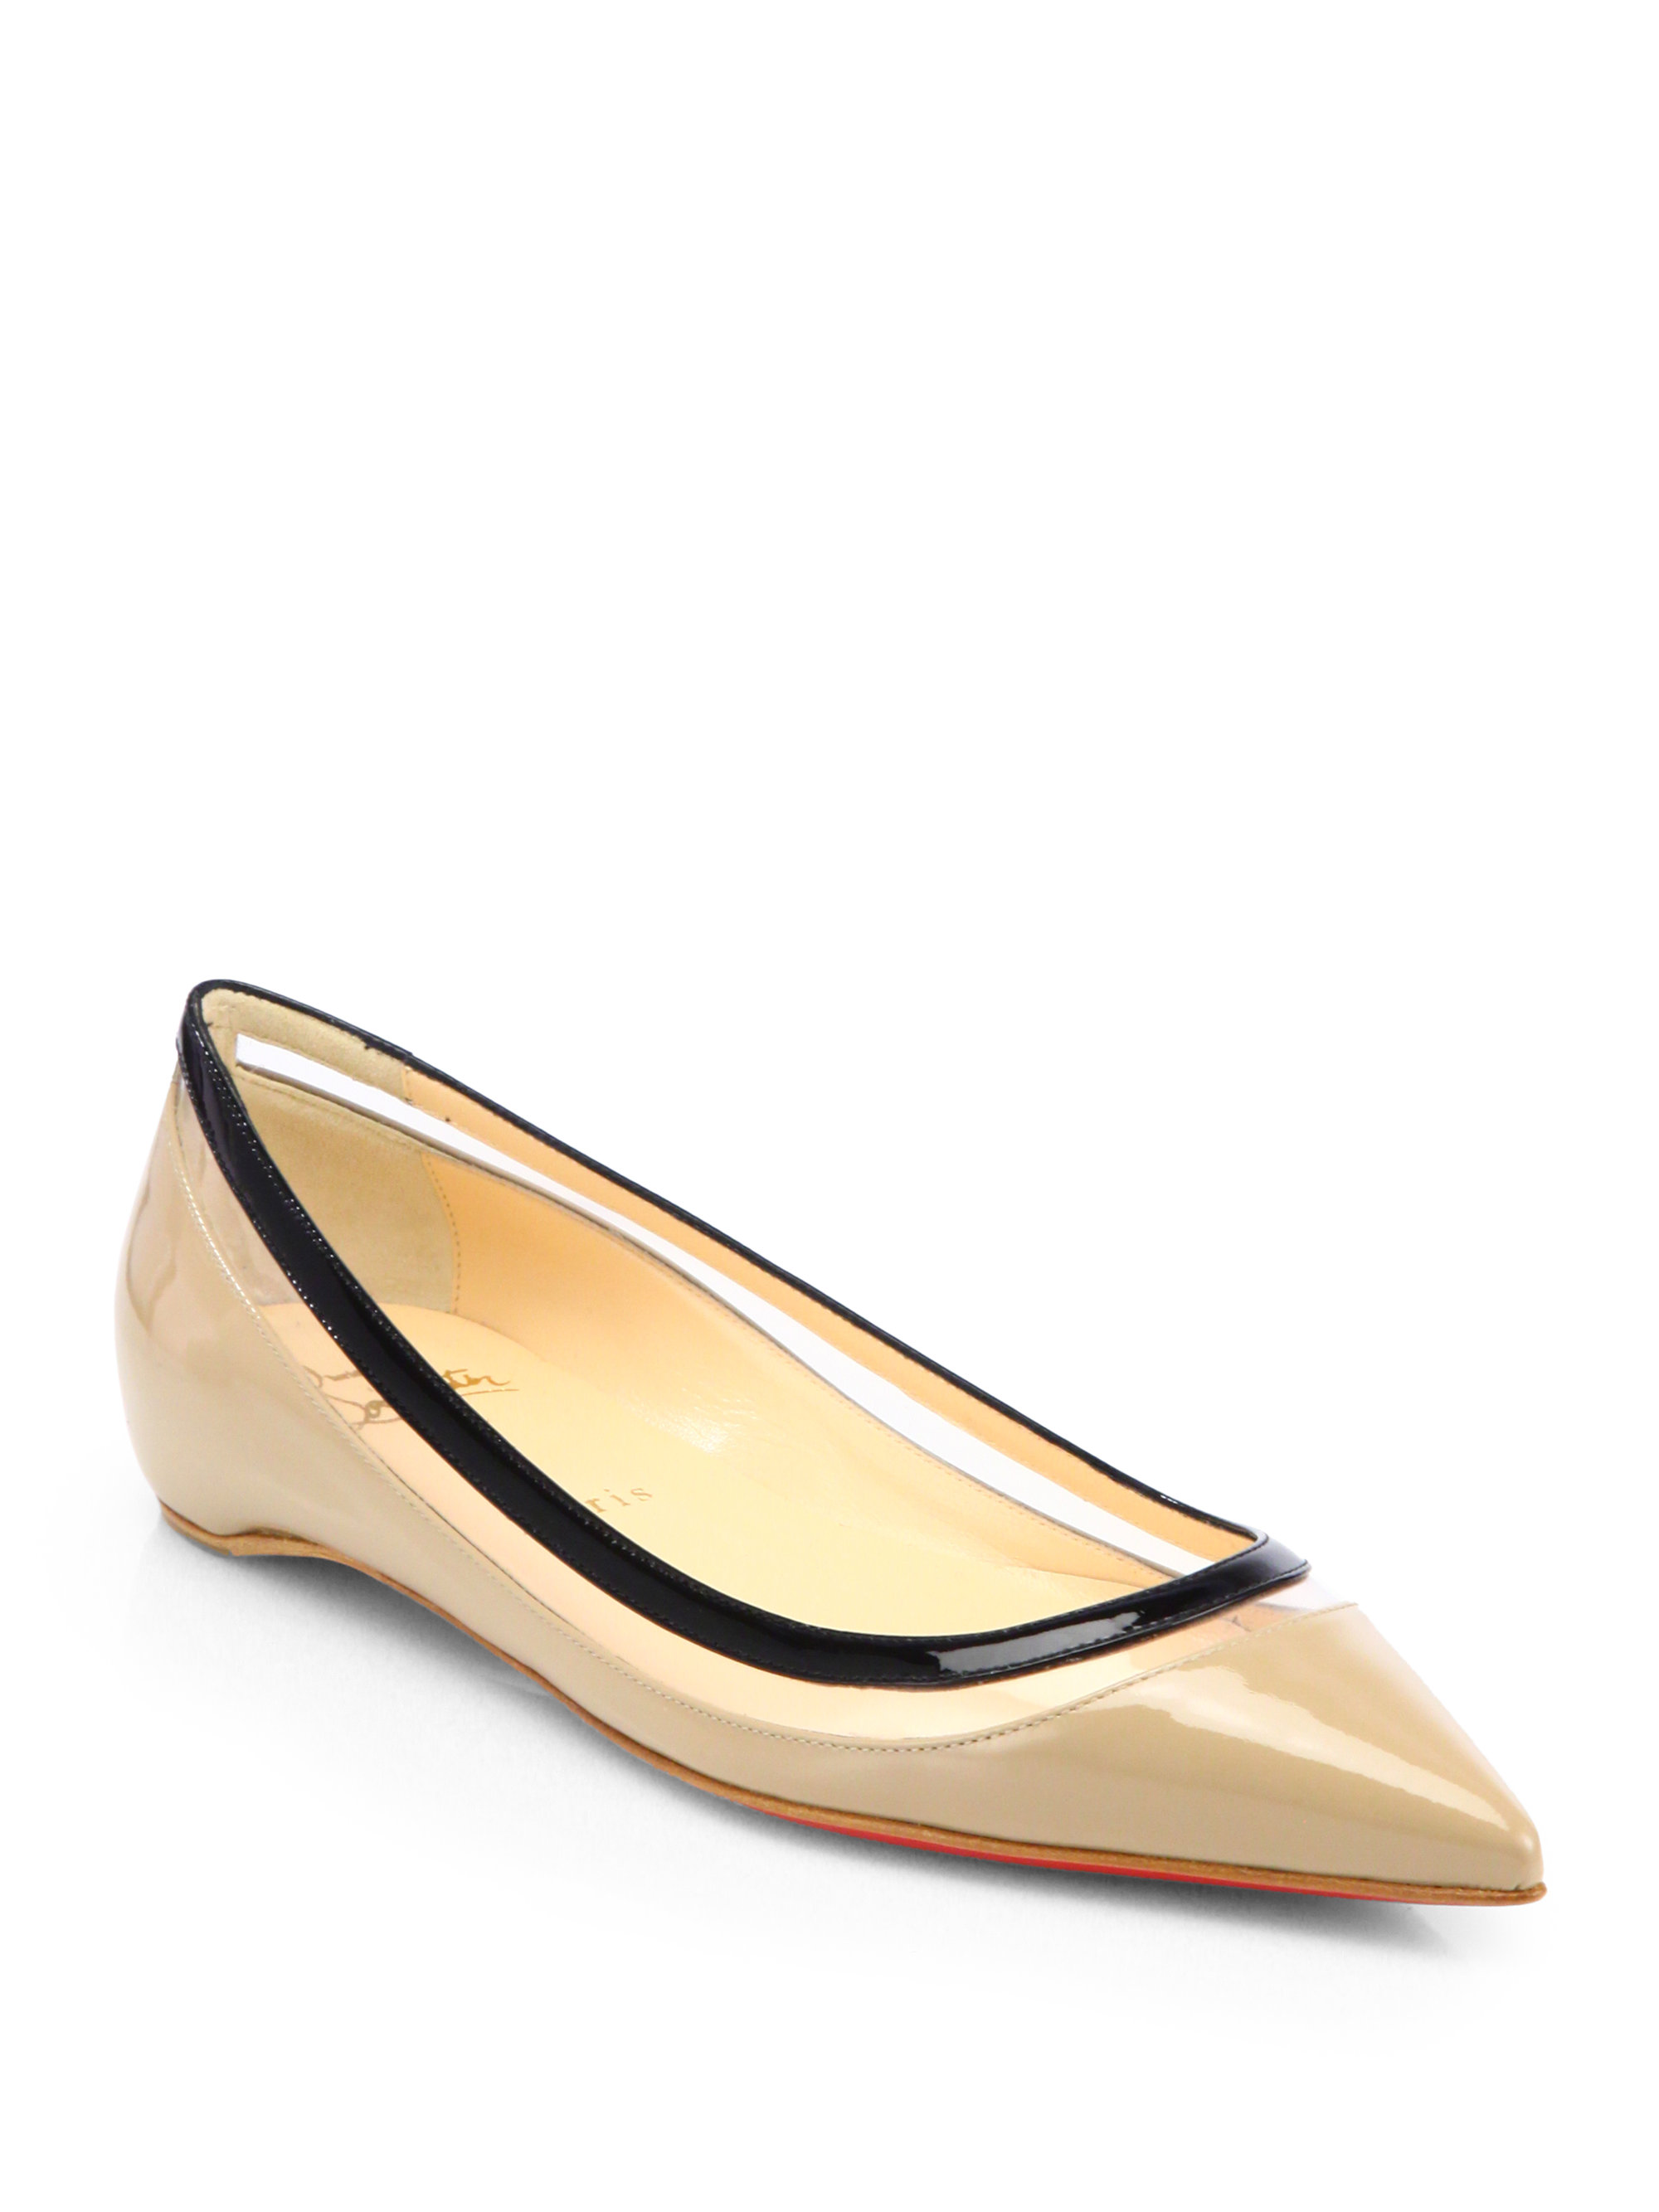 christian louboutin pointed-toe flats Black suede | cosmetics ...